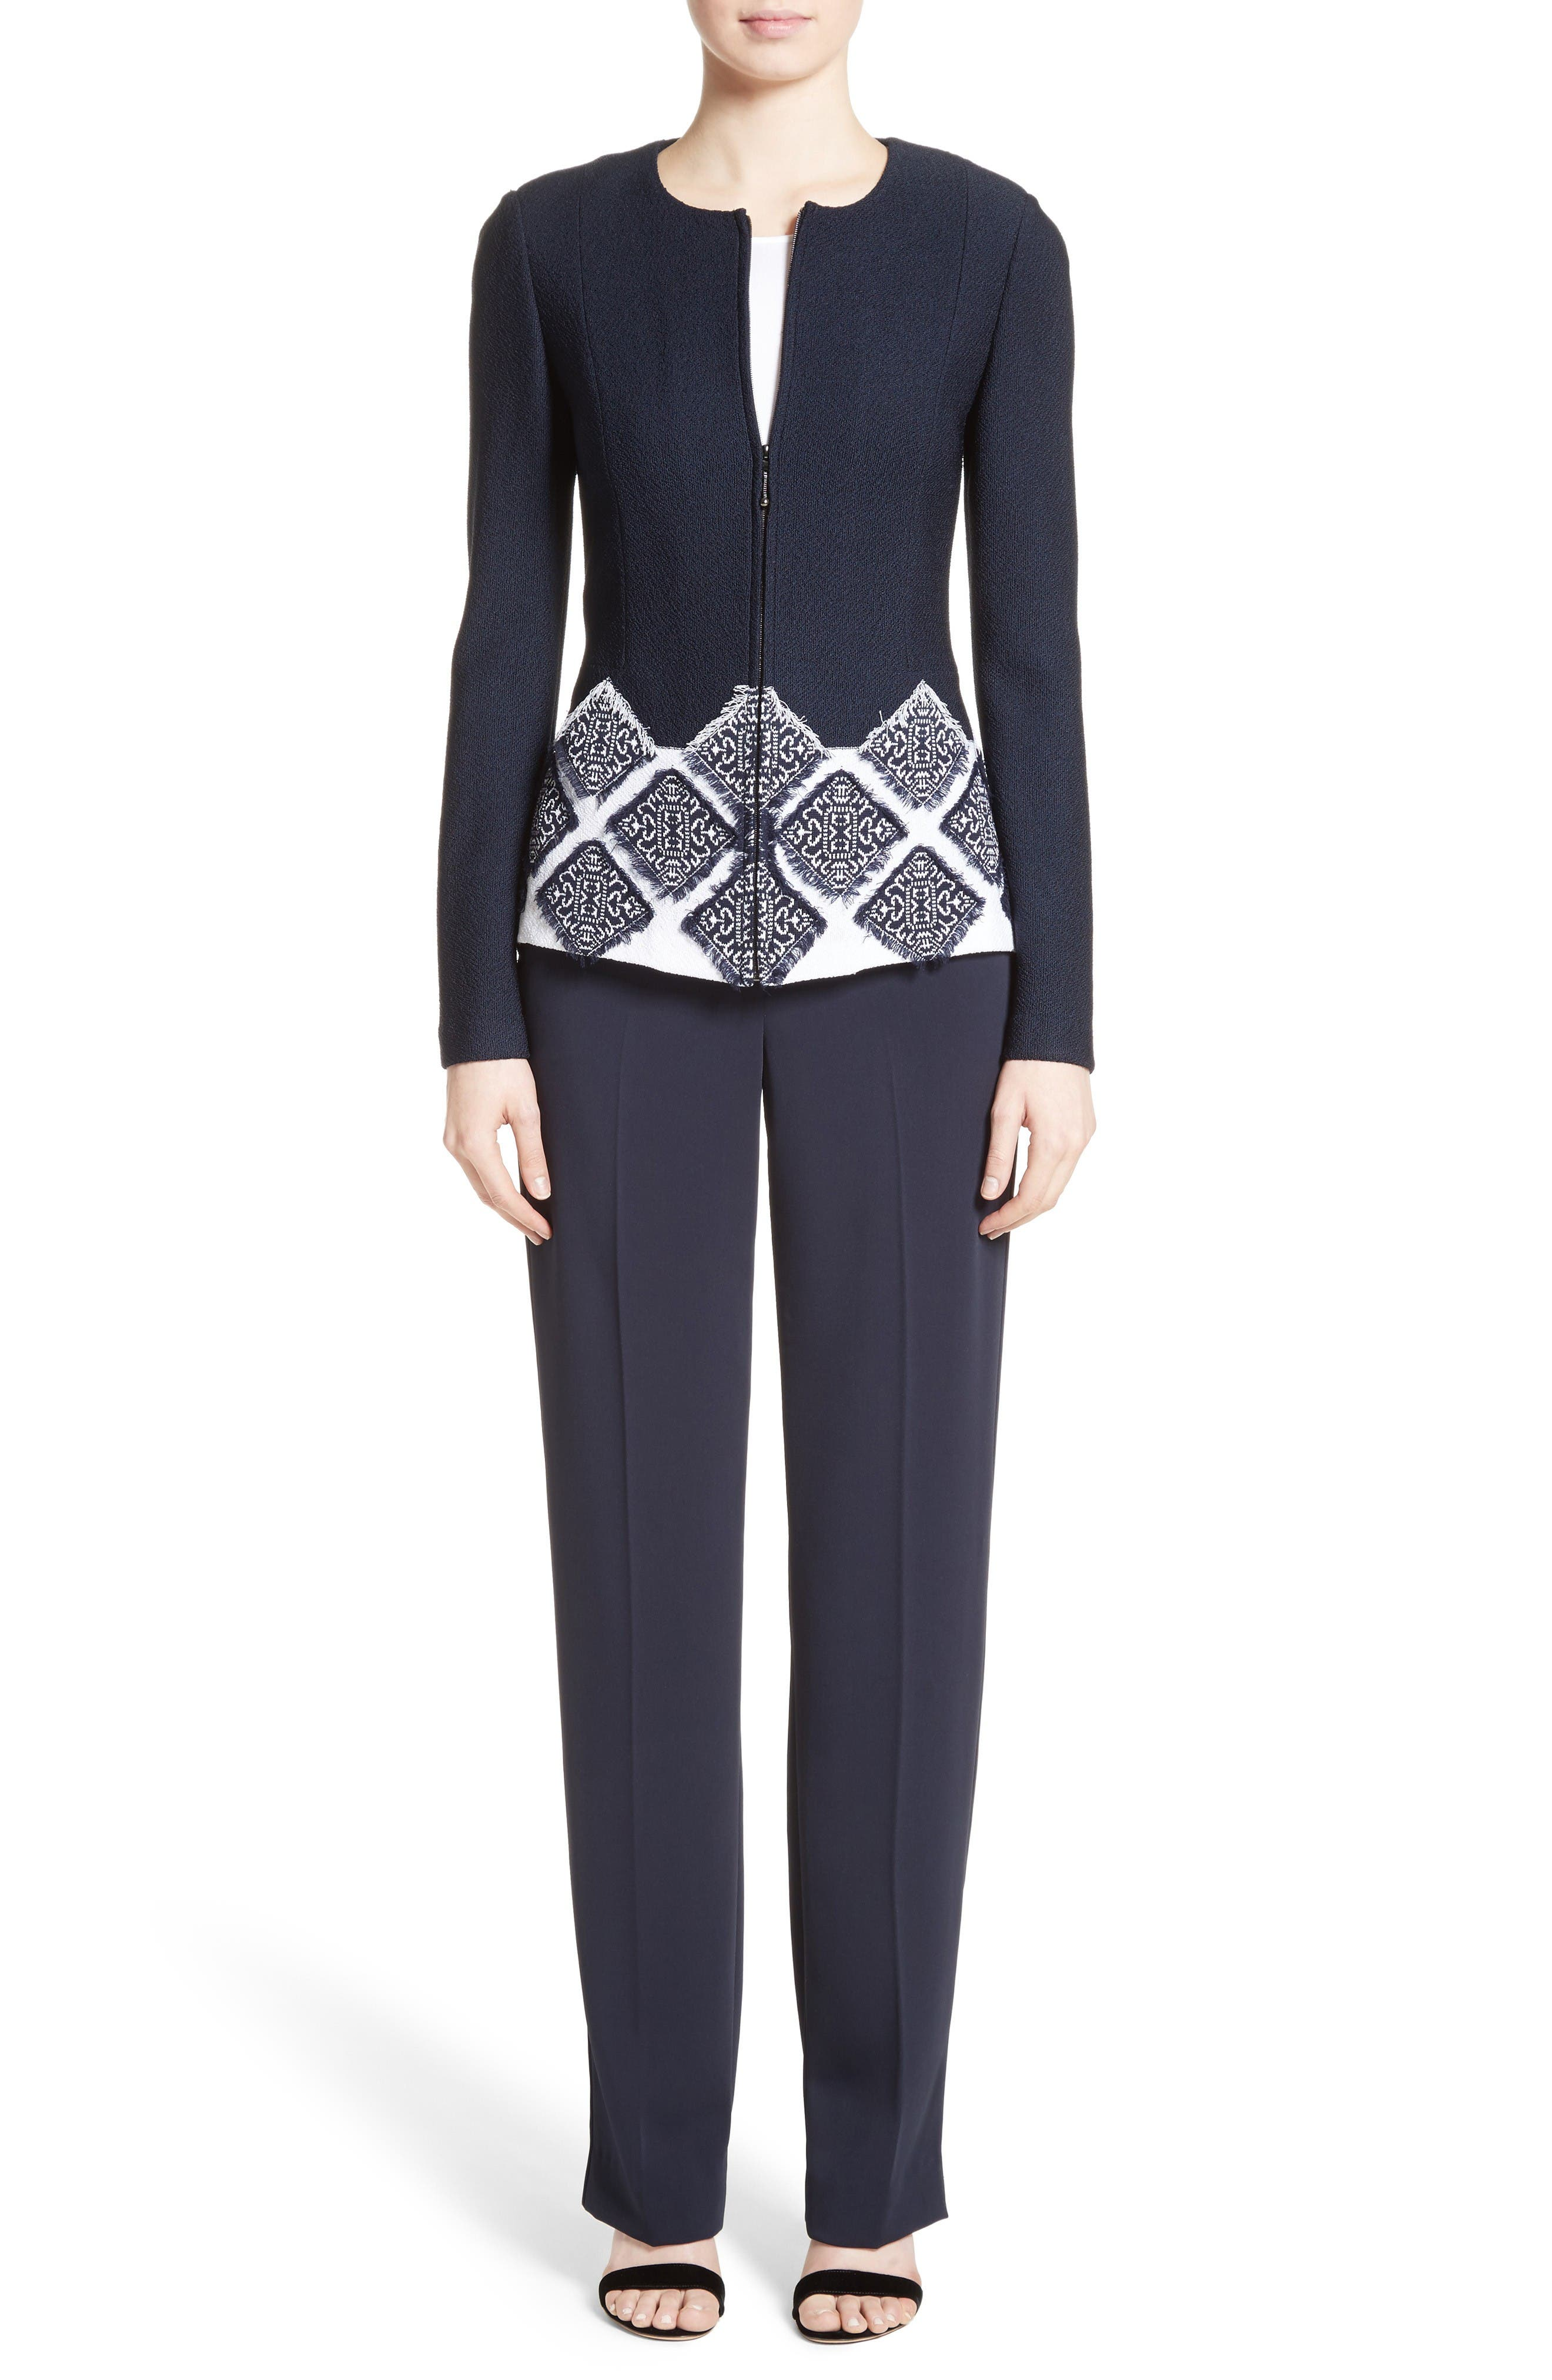 St. John Collection Jacket, Top & Pants Outfit with Accessories